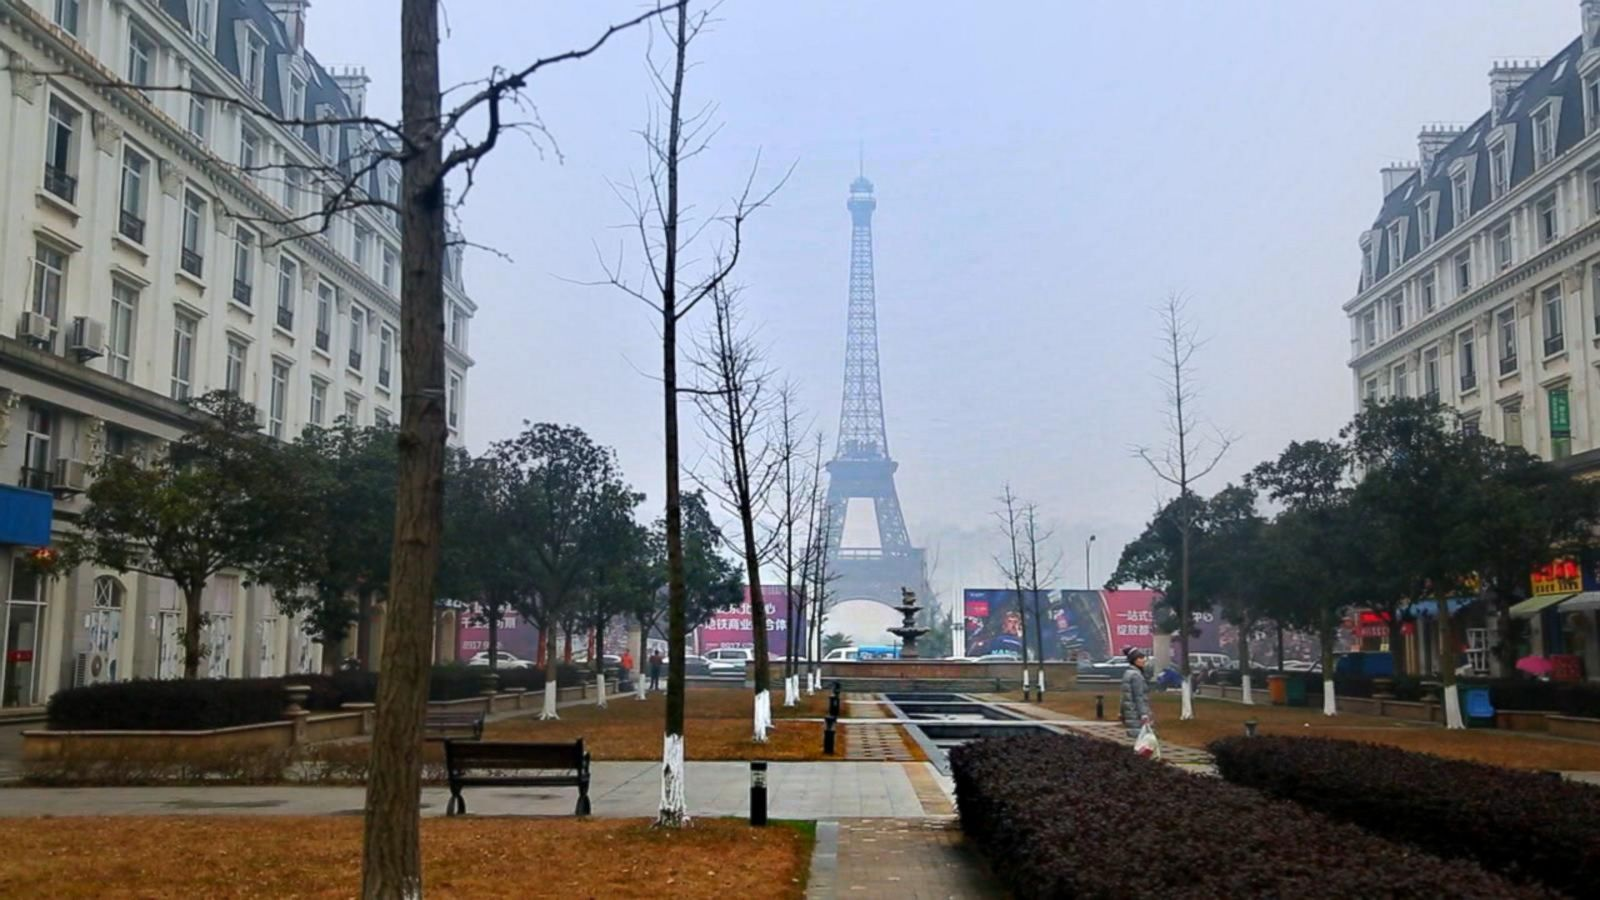 China's 'Fake' Cities Are Eerie Replicas of Paris, London and